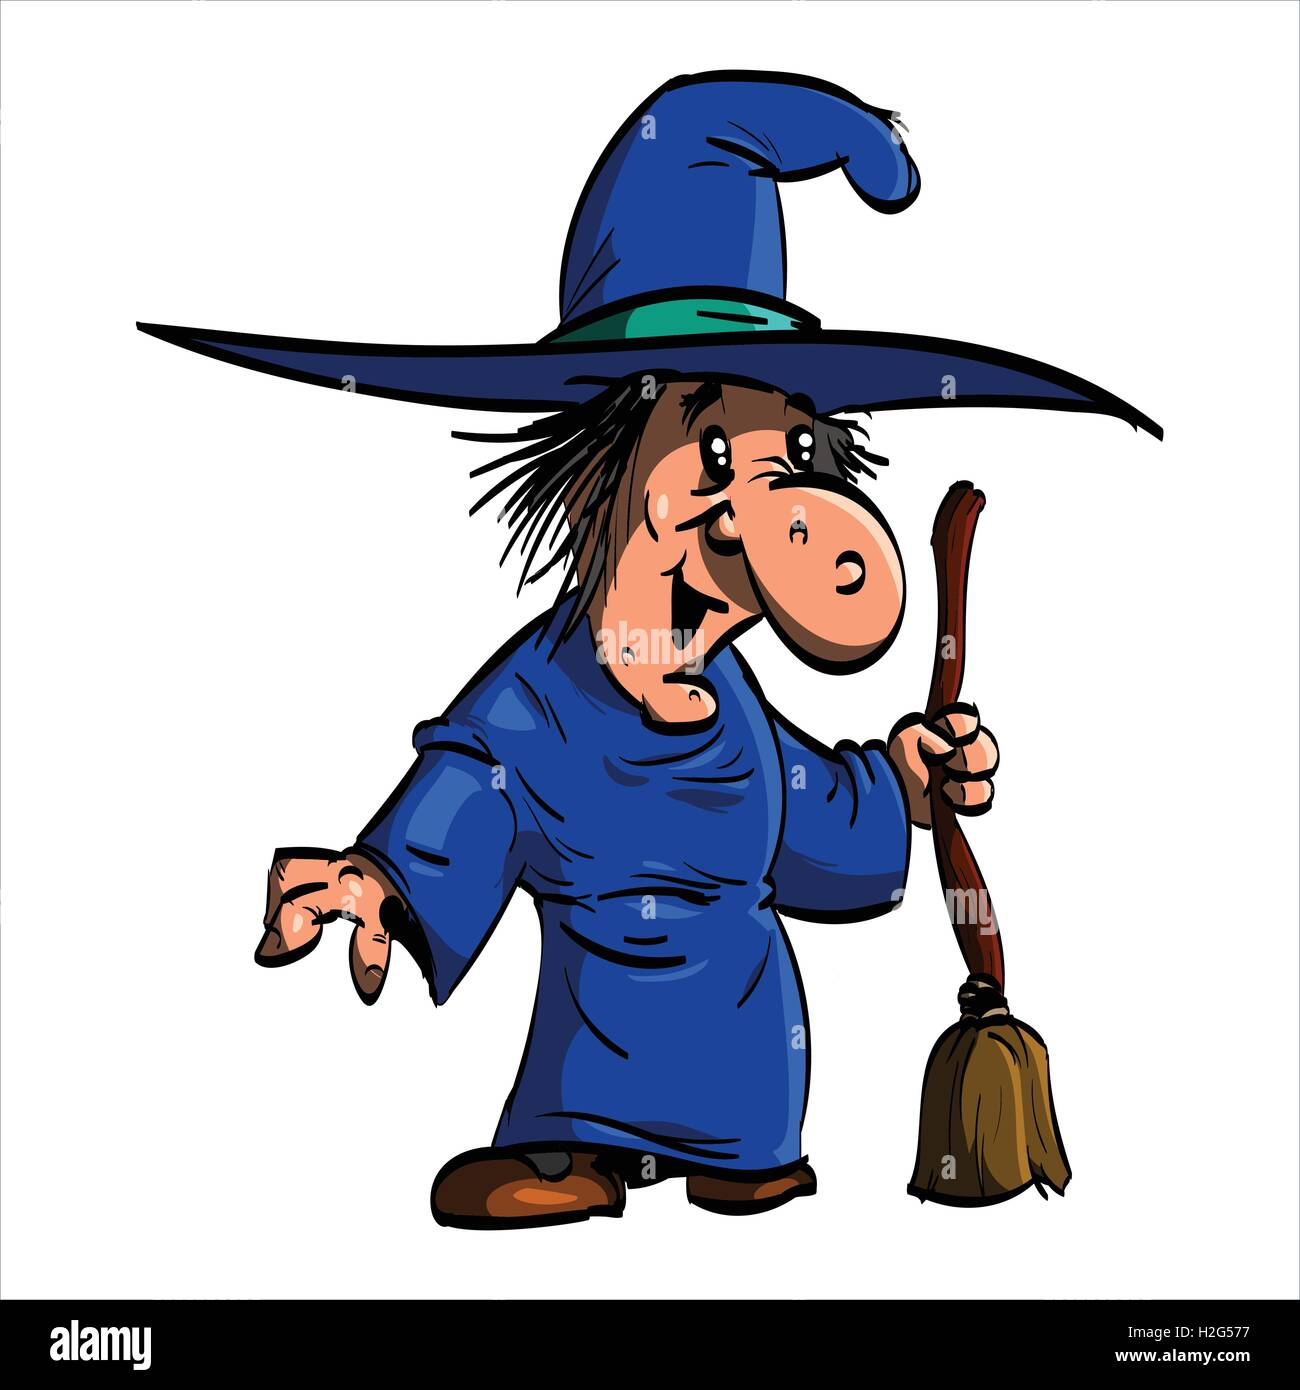 Cartoon illustration of Befana or a wtich with blue clothes and a broomstick. - Stock Vector